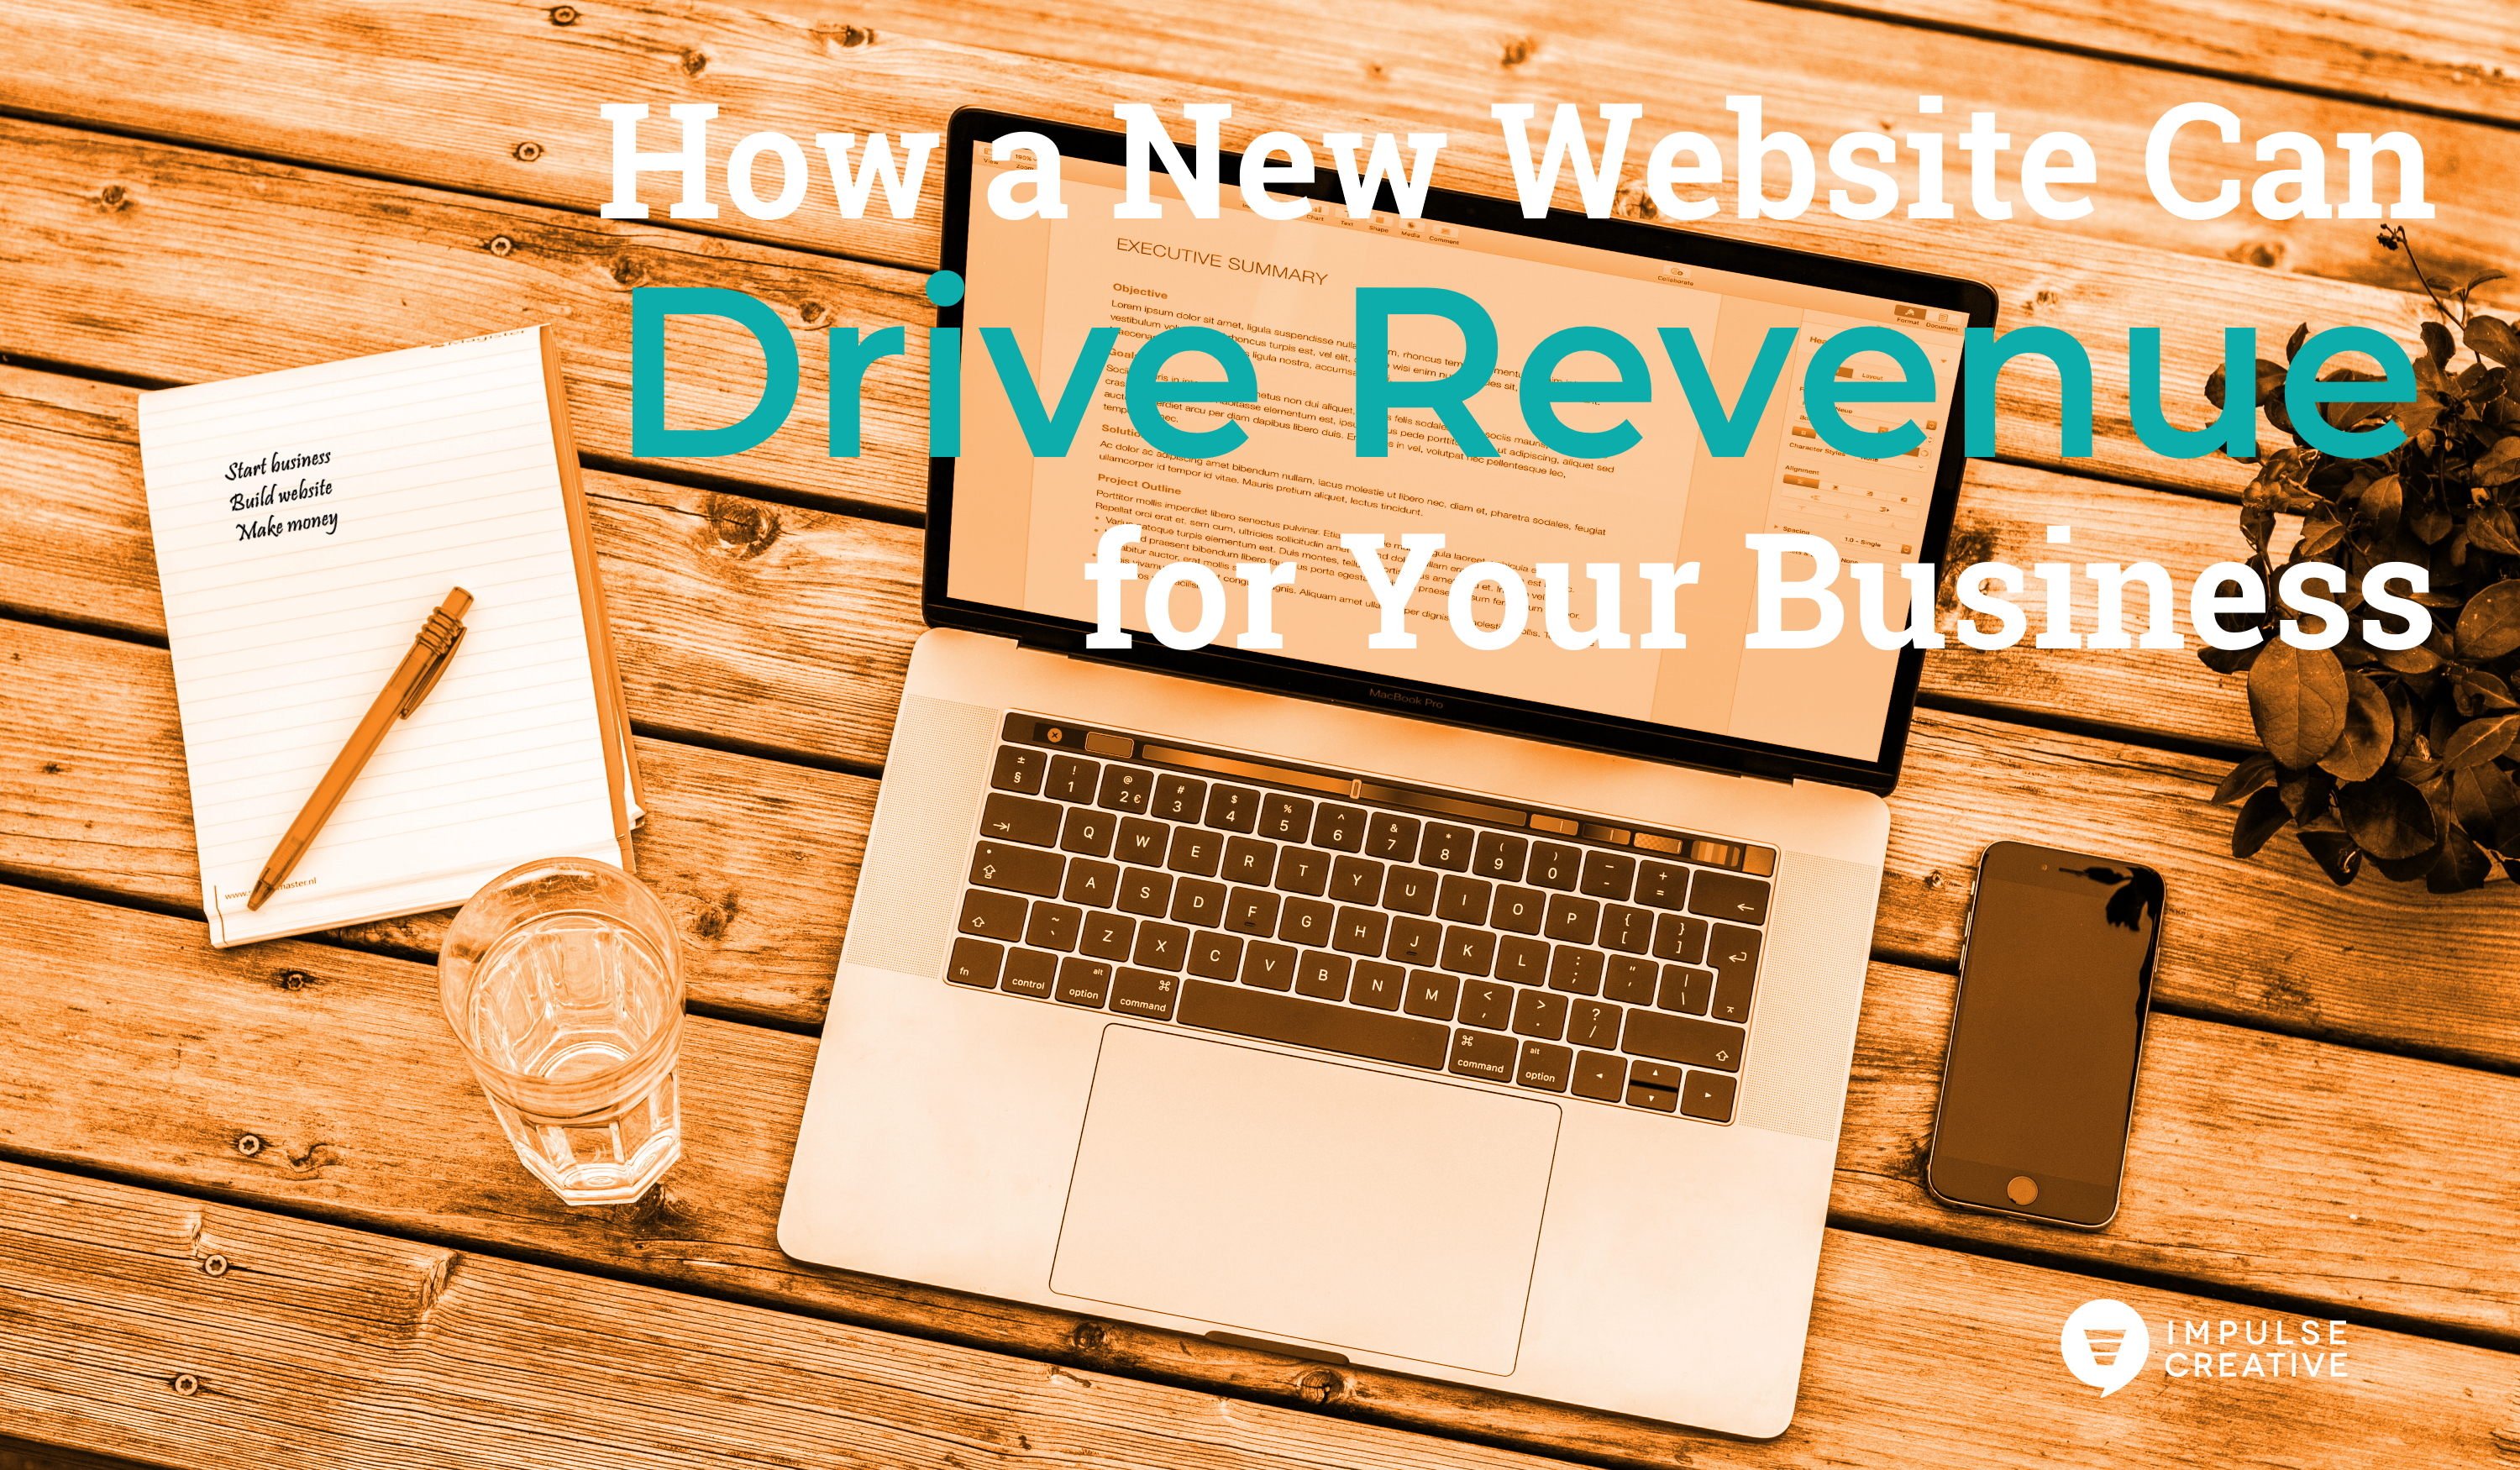 How a New Website Can Drive Revenue for Your Business